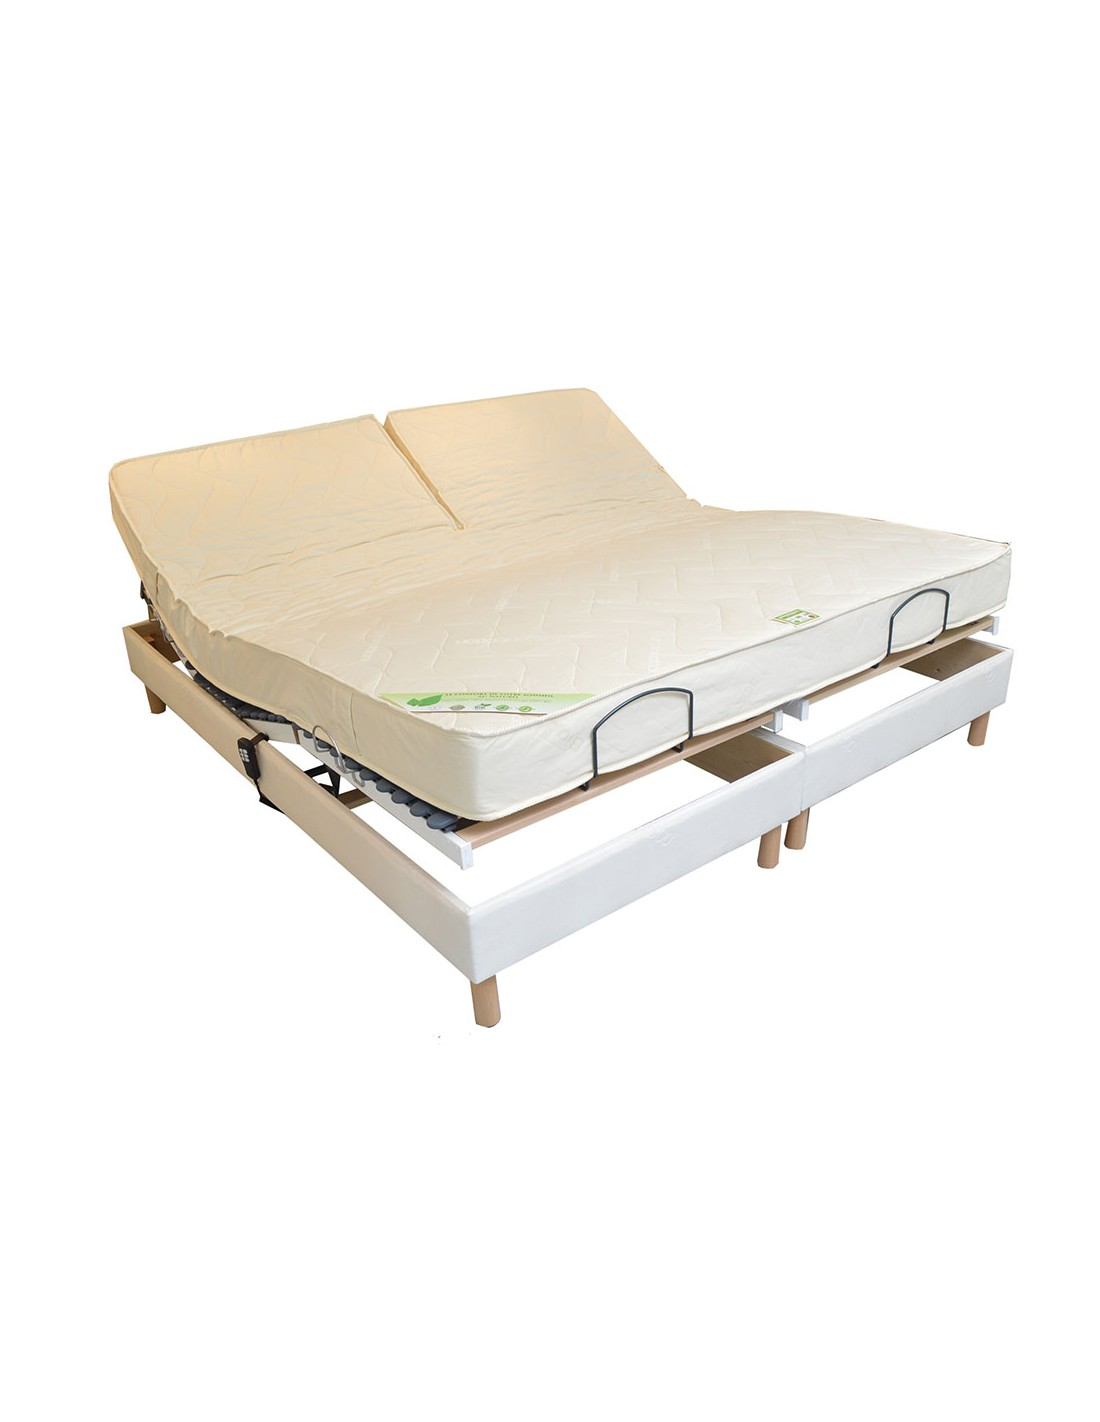 Matela Latex Matelas Bio Latex De Relaxation 160x200 Bi Tête Naturel